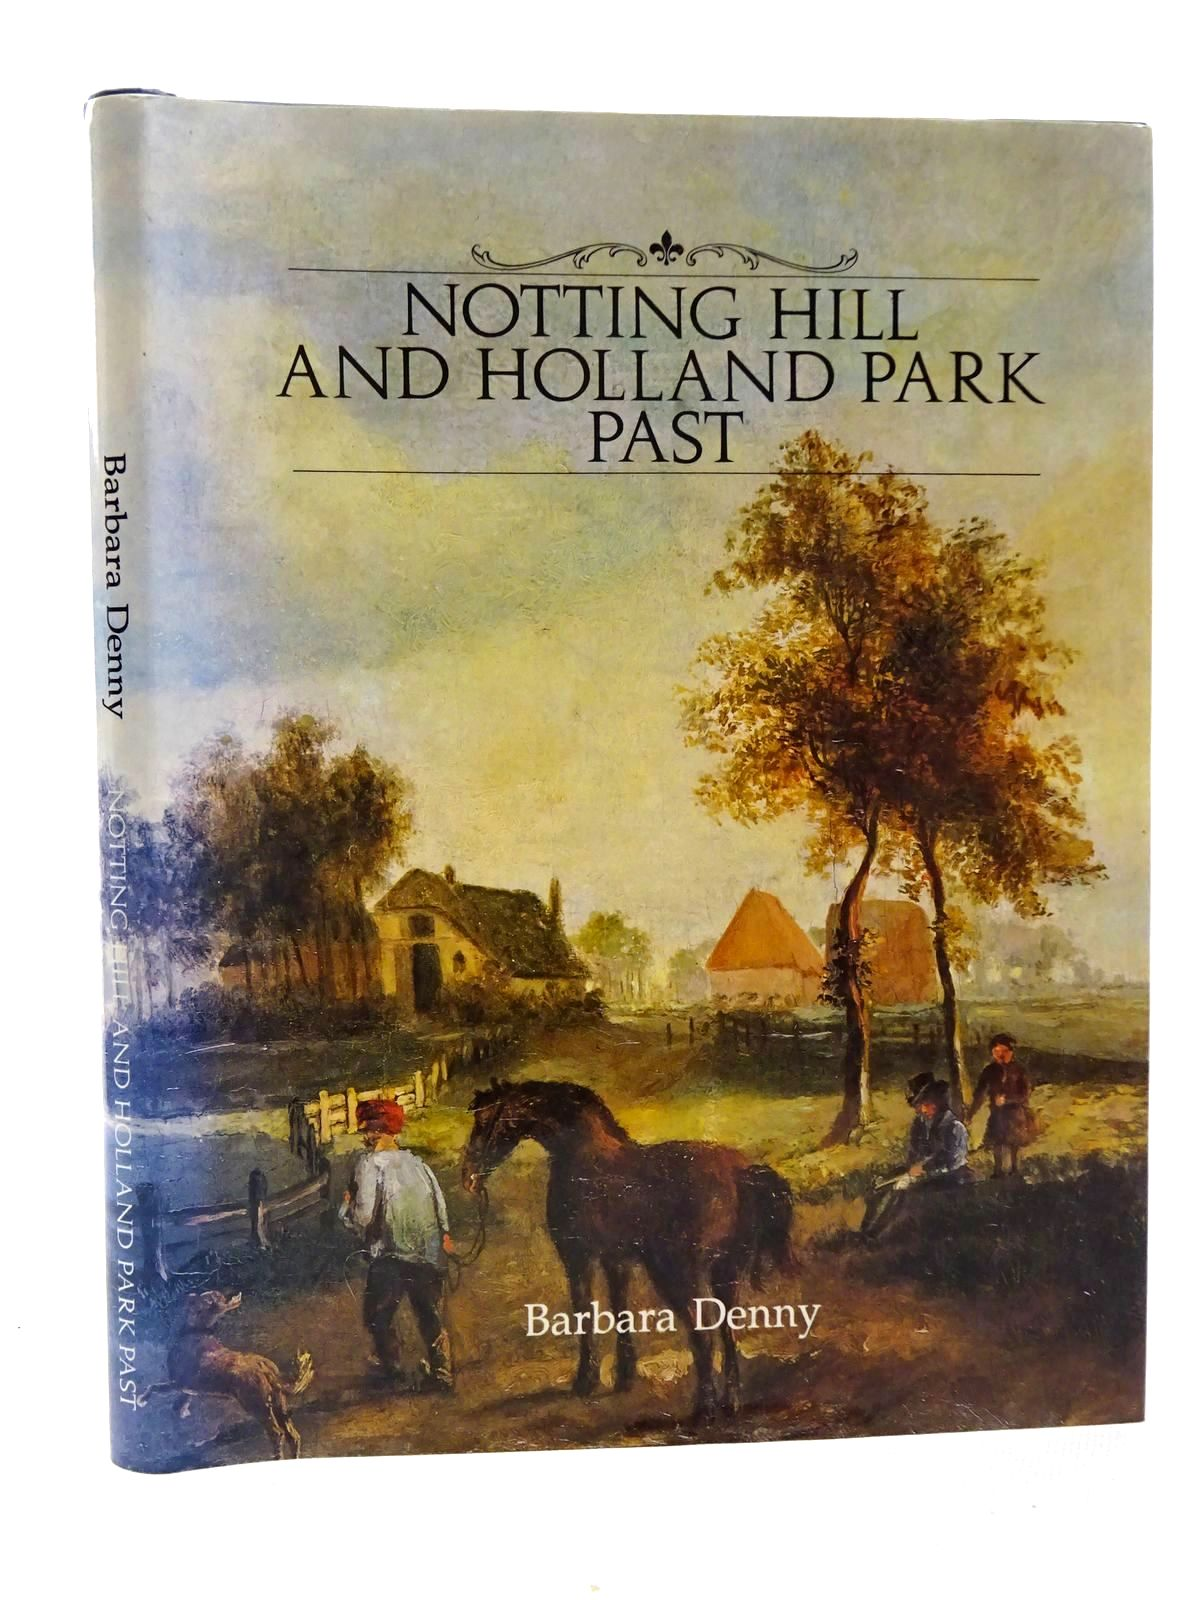 Photo of NOTTING HILL & HOLLAND PARK PAST: A VIRTUAL HISTORY written by Denny, Barbara published by Historical Publications Ltd. (STOCK CODE: 1815658)  for sale by Stella & Rose's Books